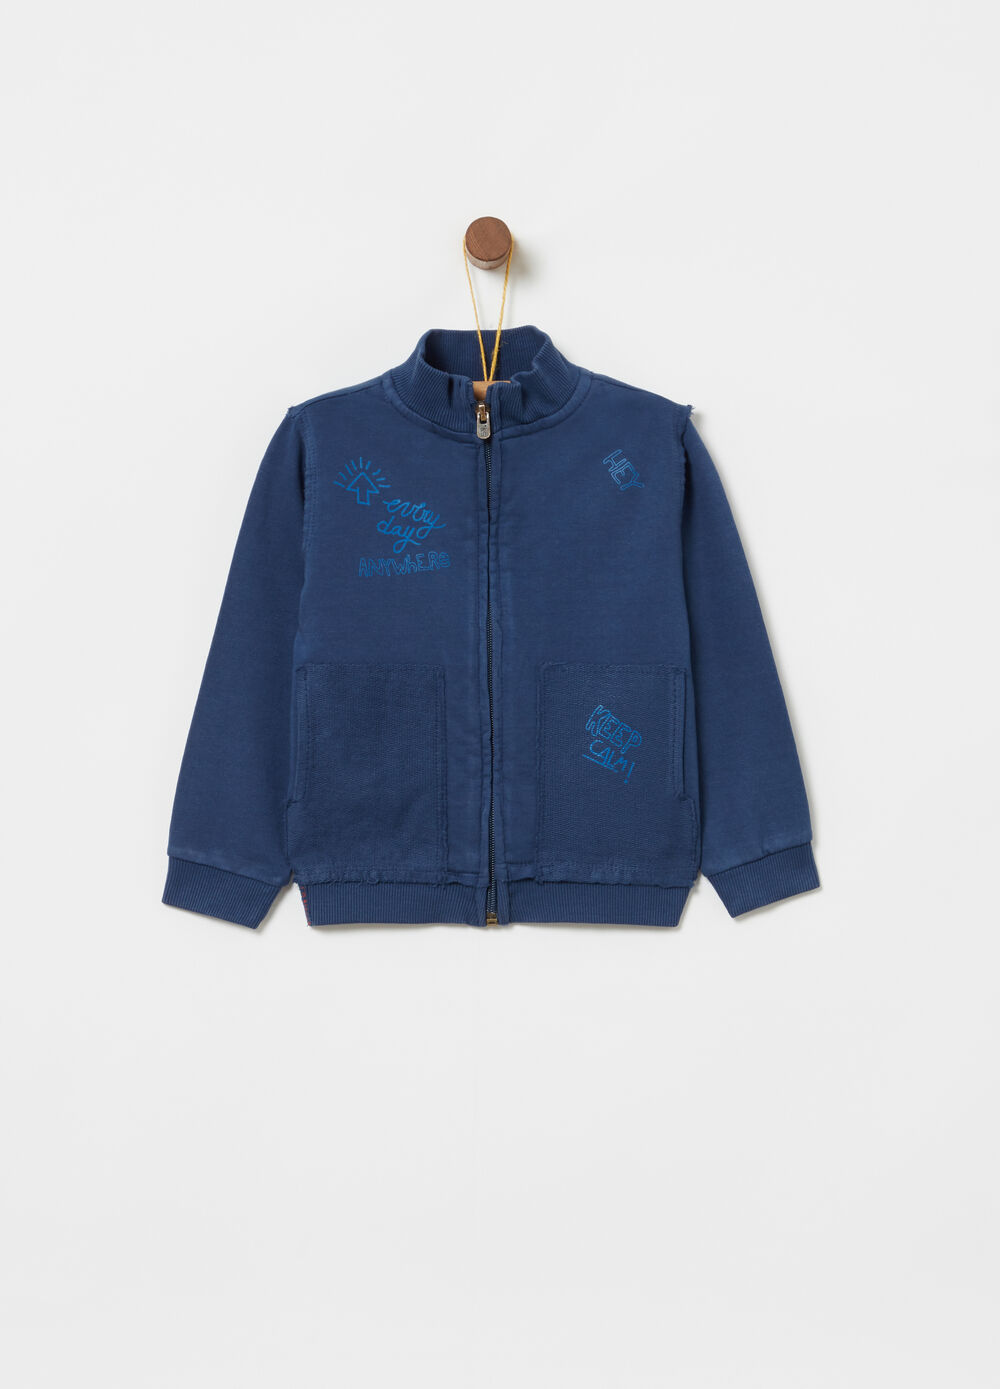 Sweatshirt with ribbed pocket, print and full zip